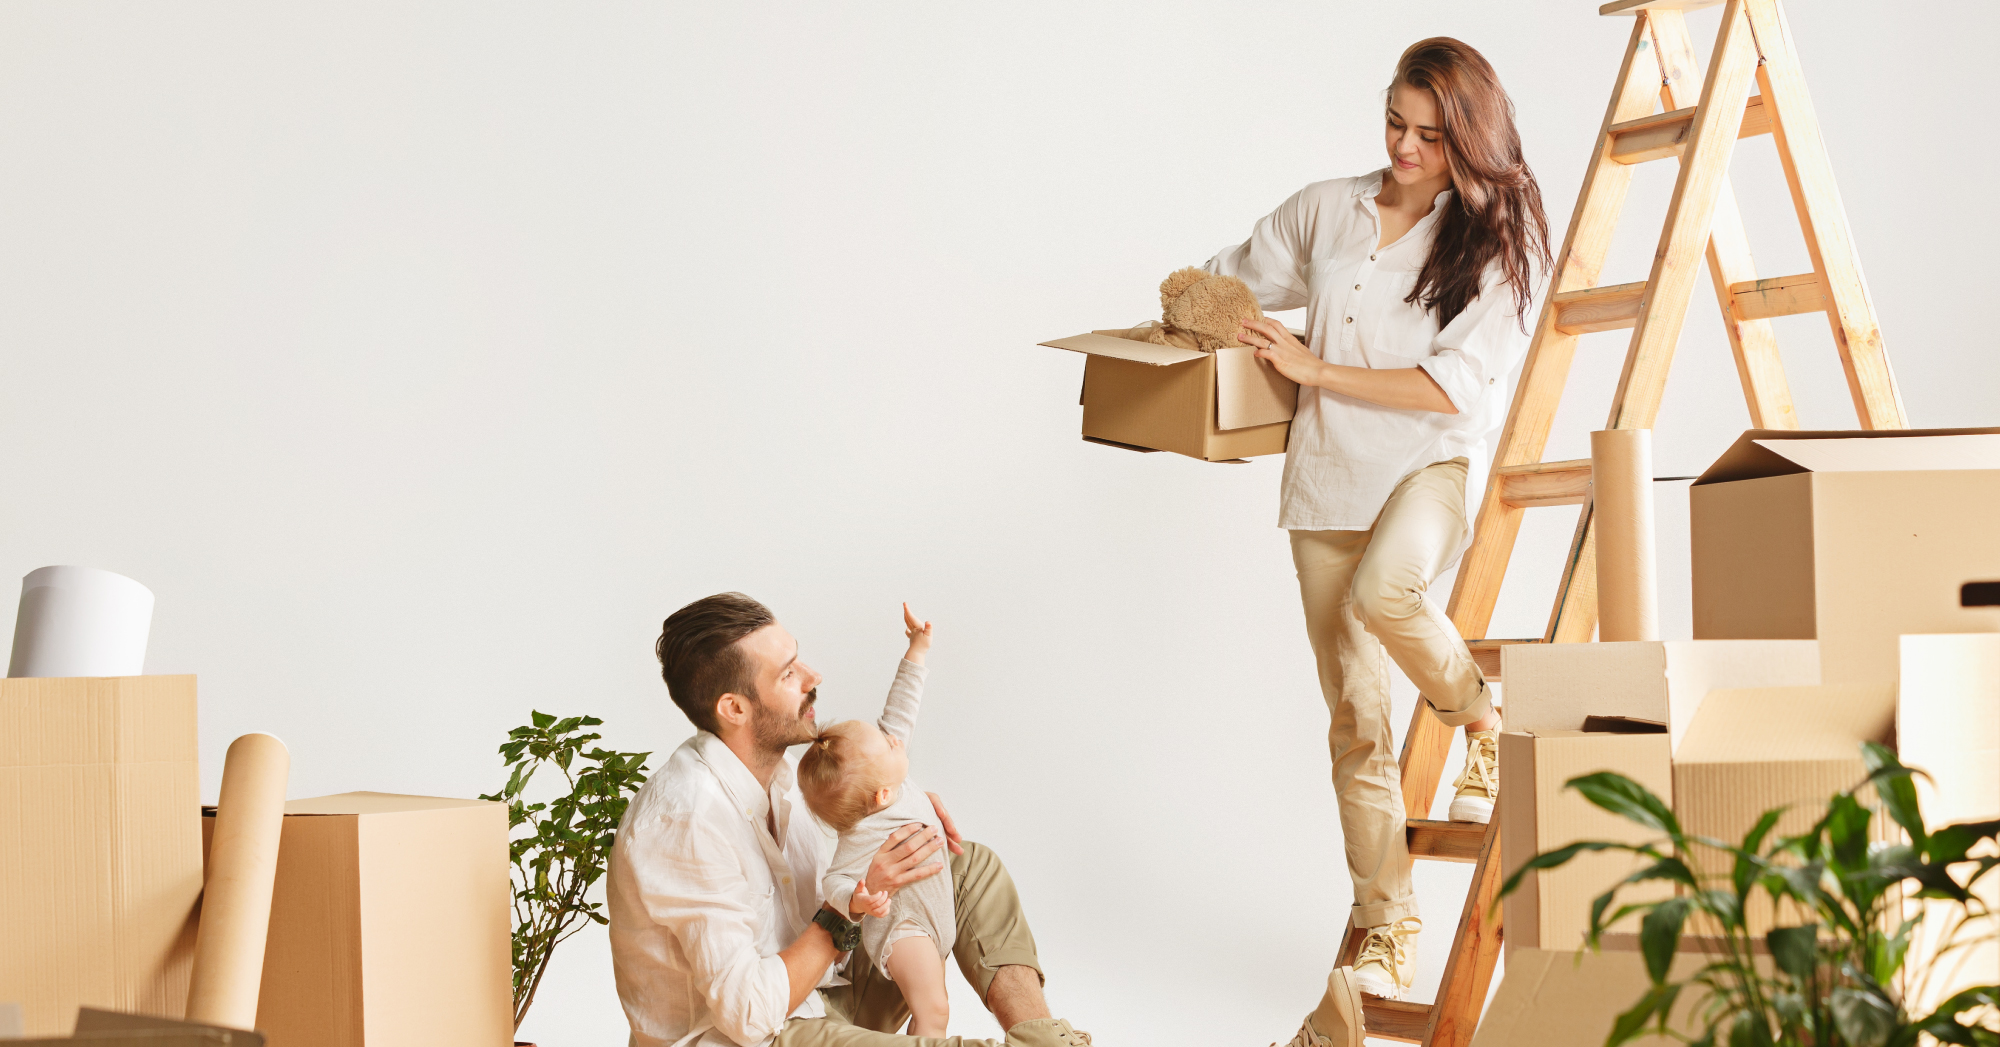 Two people unpacking in an new home. Man on the ground, woman on a ladder.